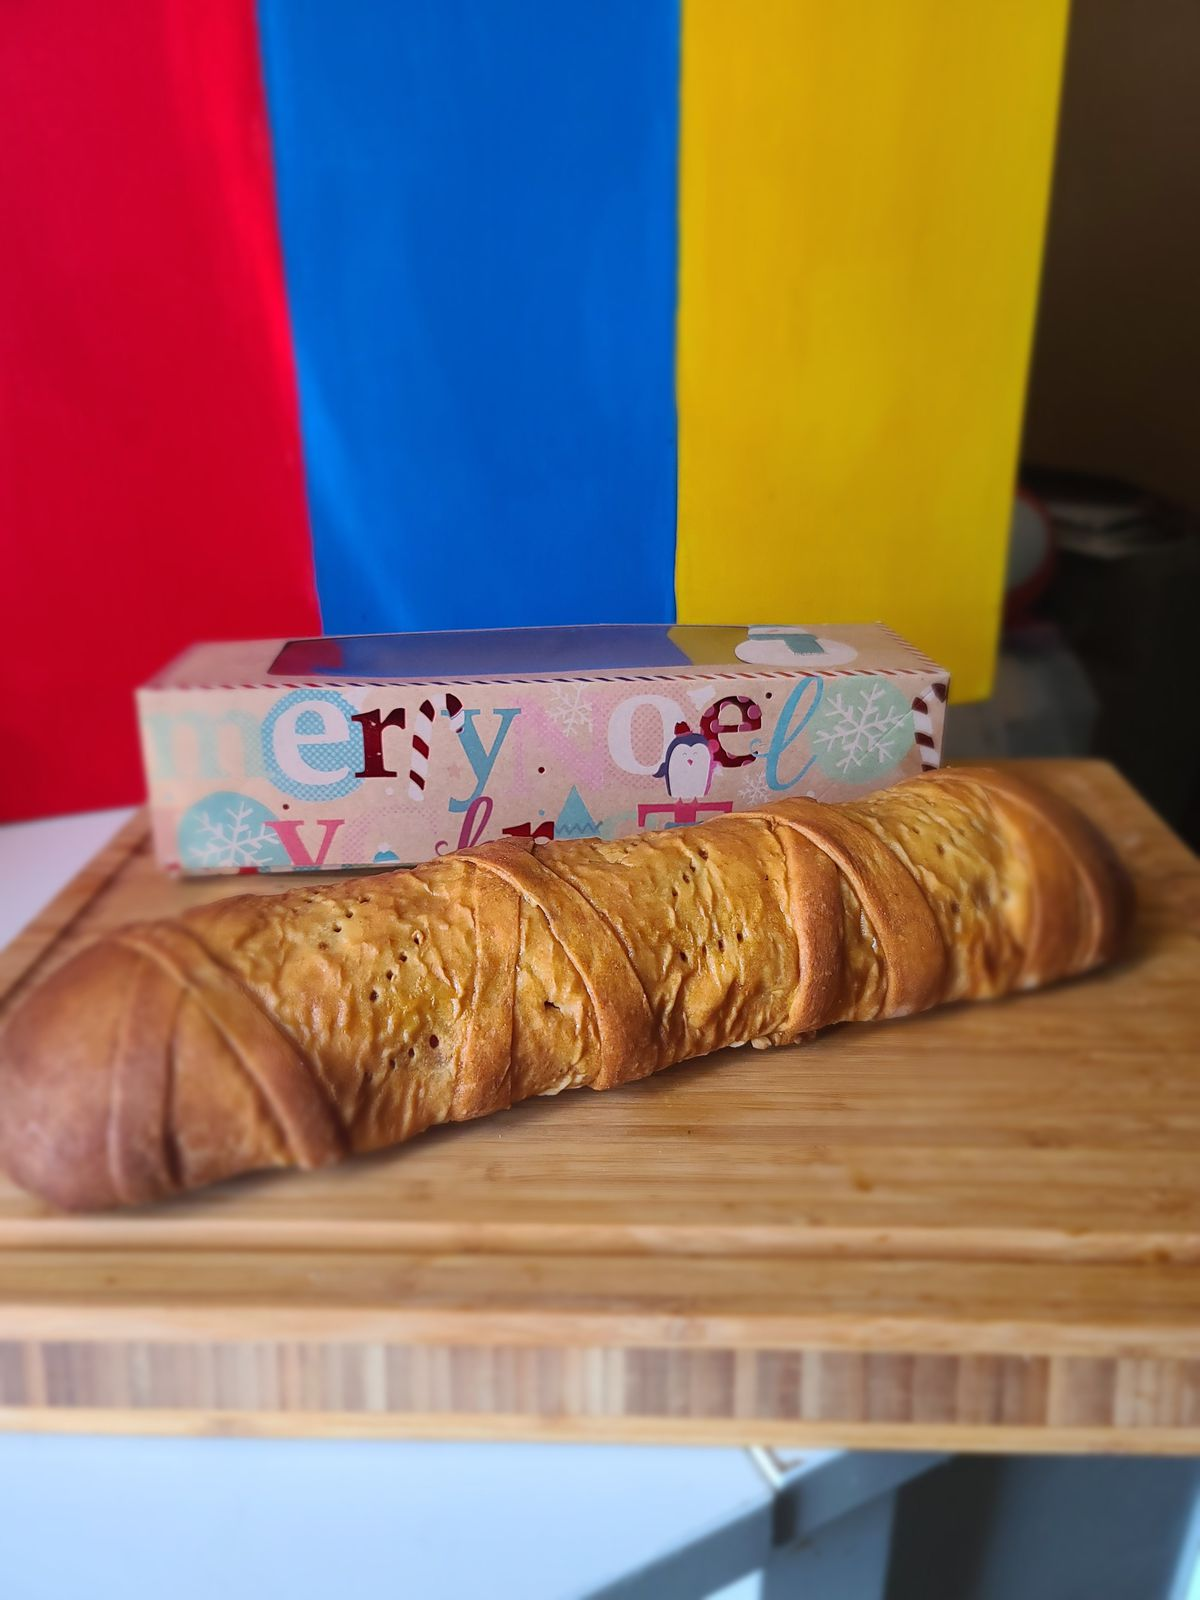 Pan de jamon, a traditional Venezuelan Christmas bread, on a table in front of a wrapped present